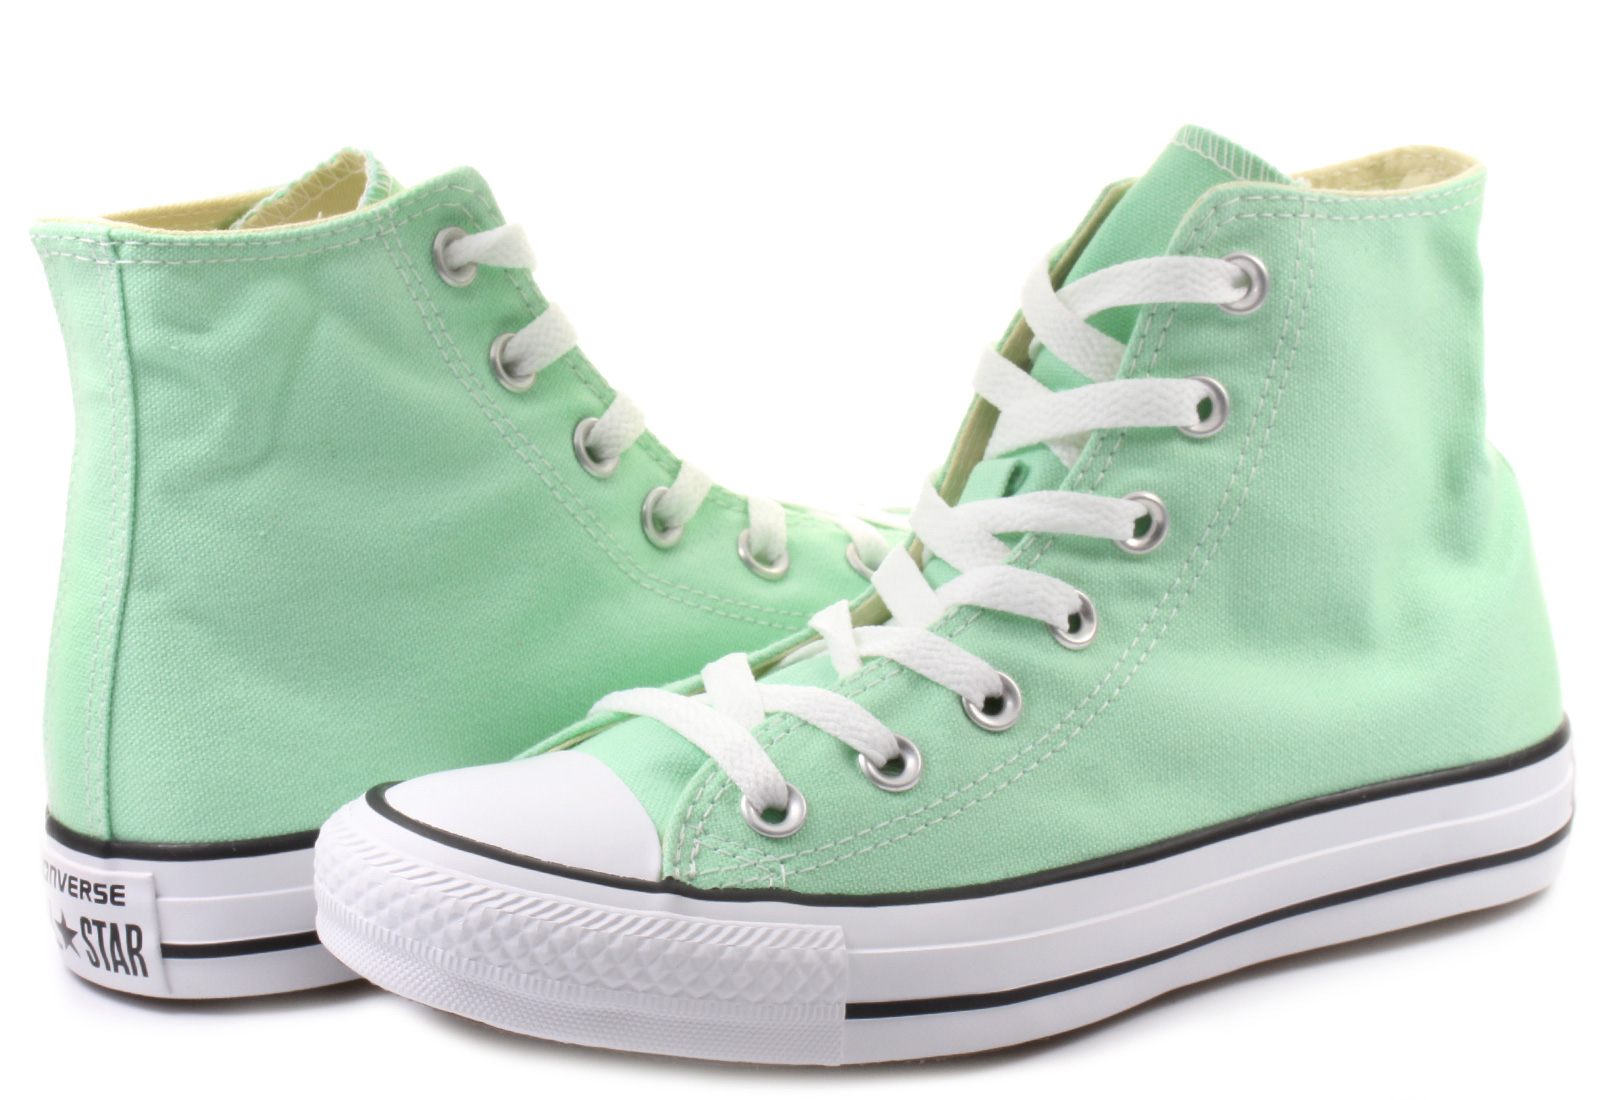 f64a2e4a7159 Converse Sneakers - Chuck Taylor All Star Seasonal Hi - 142367C ...